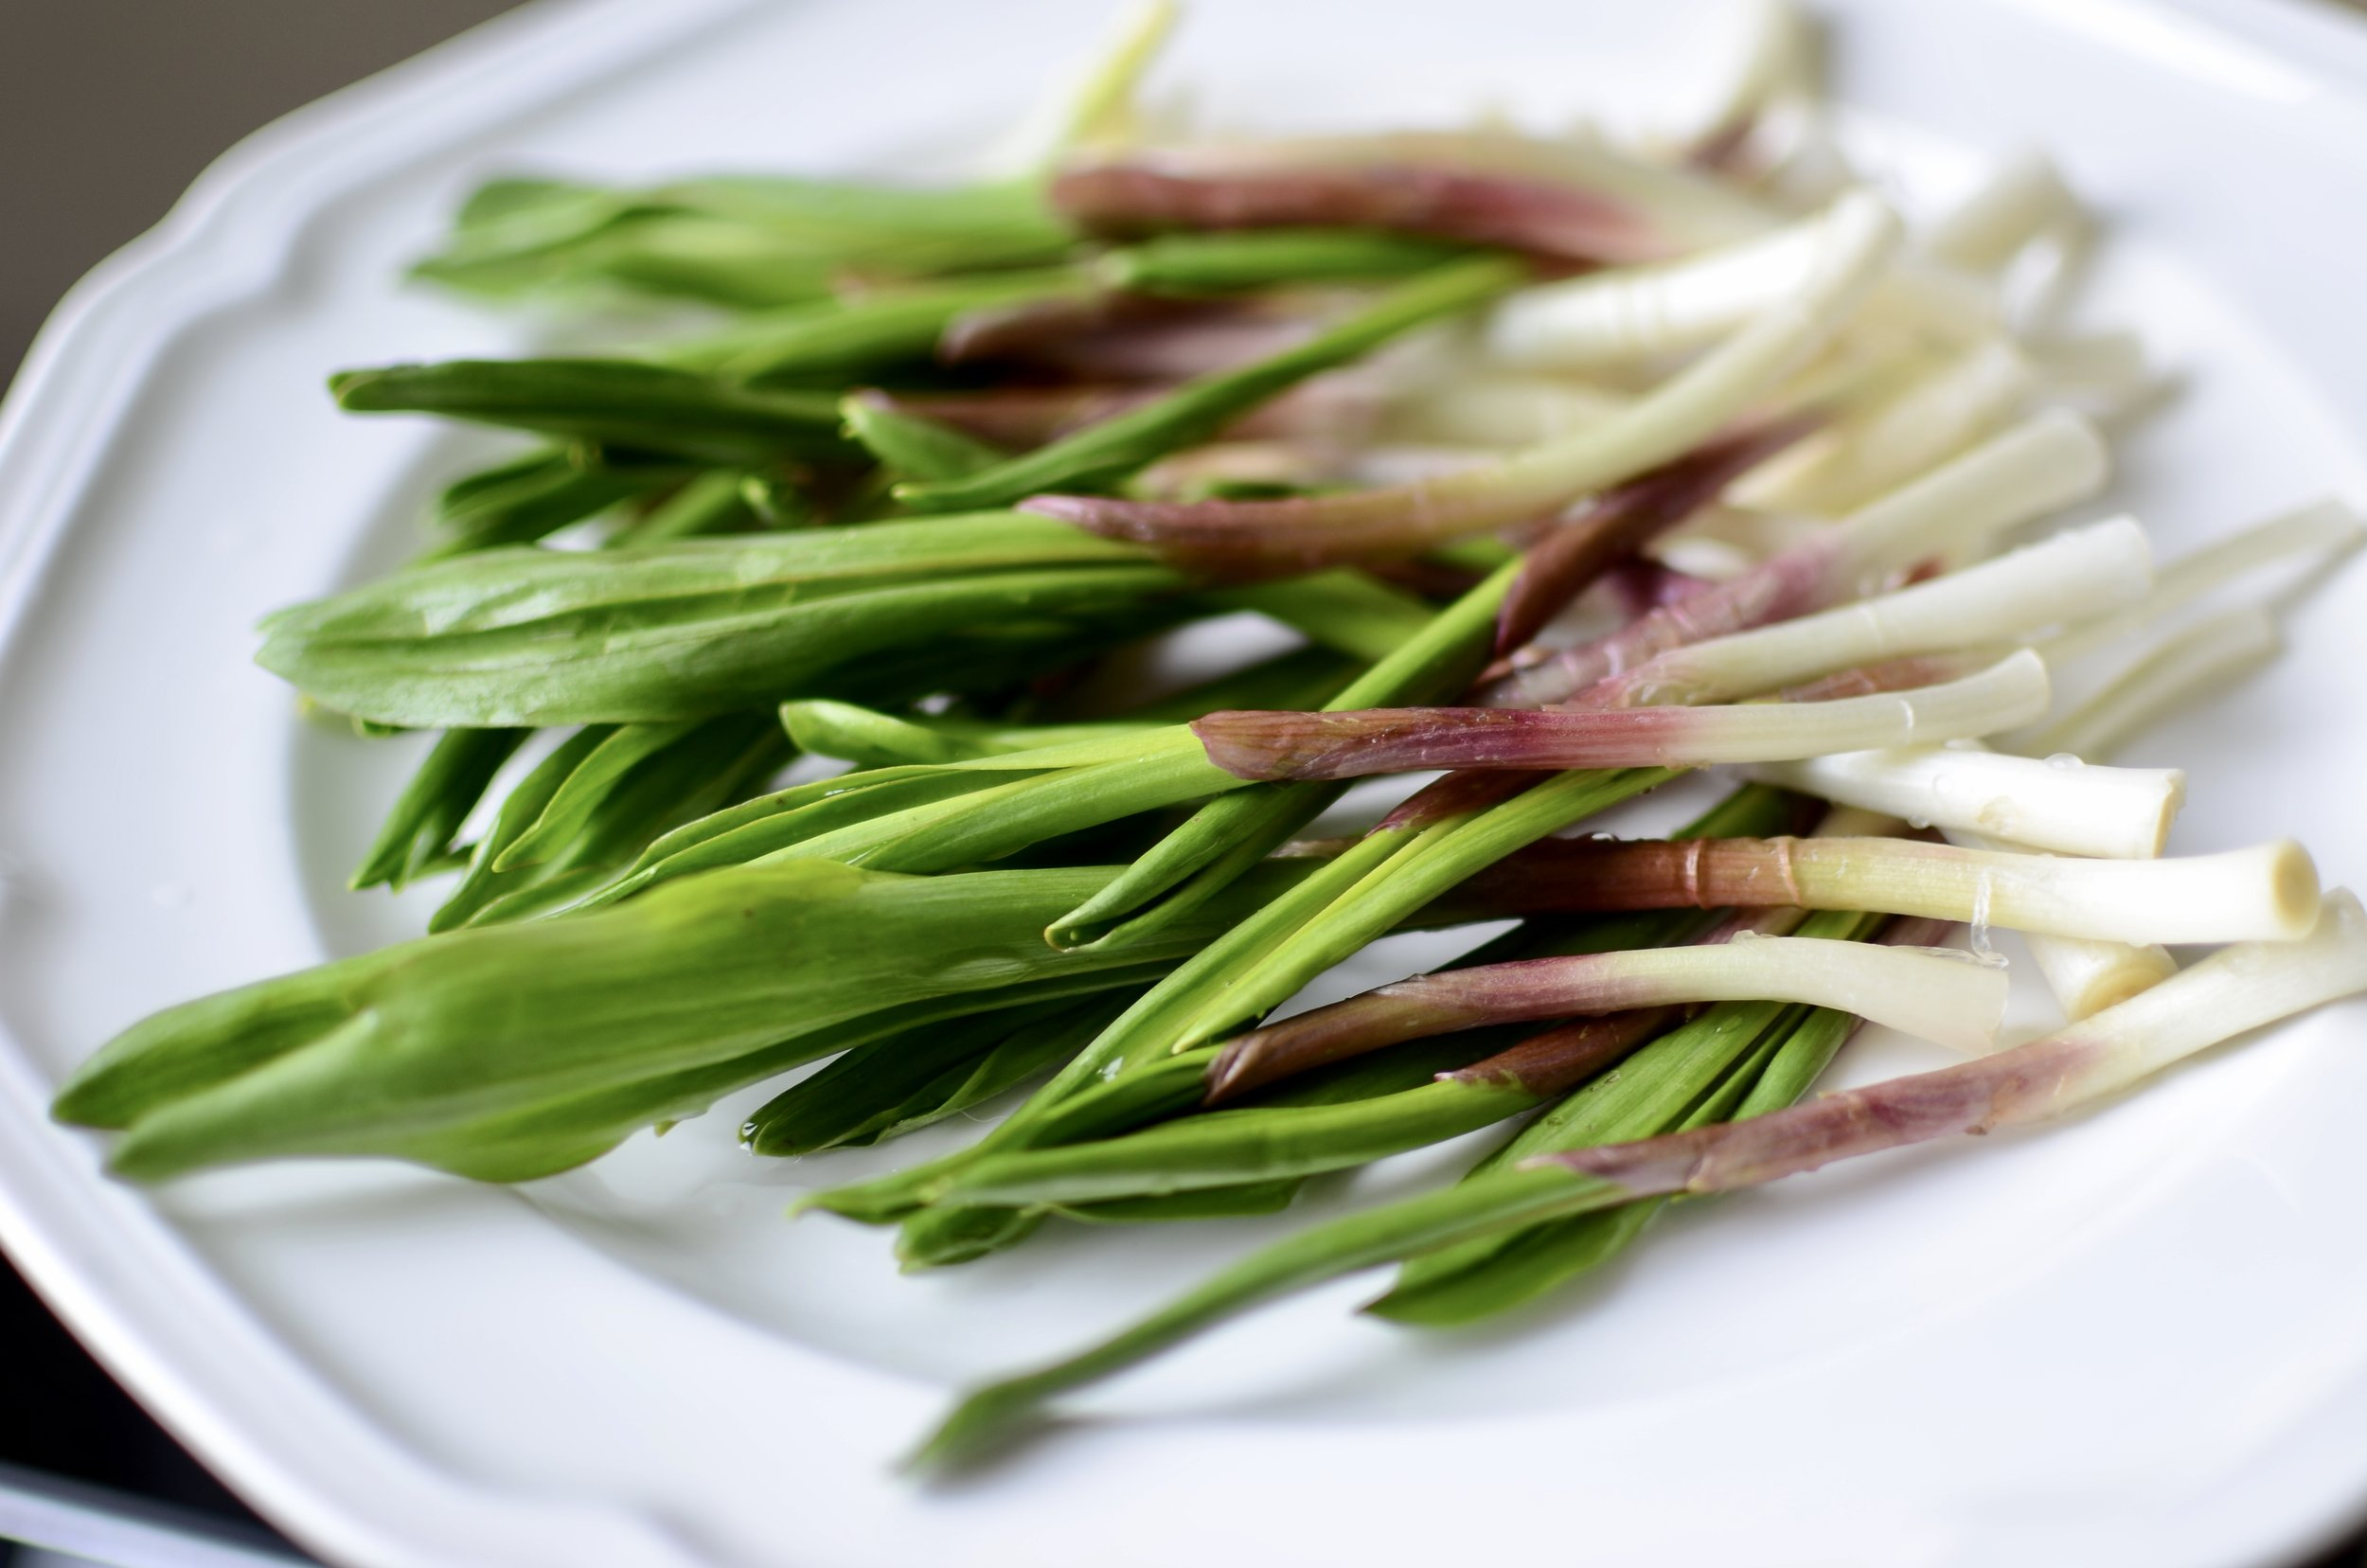 how to cook ramps - butteryum. what to do with ramps. ramps recipes. ramp recipes. skillet ramps. grilling ramps. onion ramp recipes. garlic ramp recipes. wood leek recipes. wild leek recipe. cooking with wild leeks. what do ramps taste like.